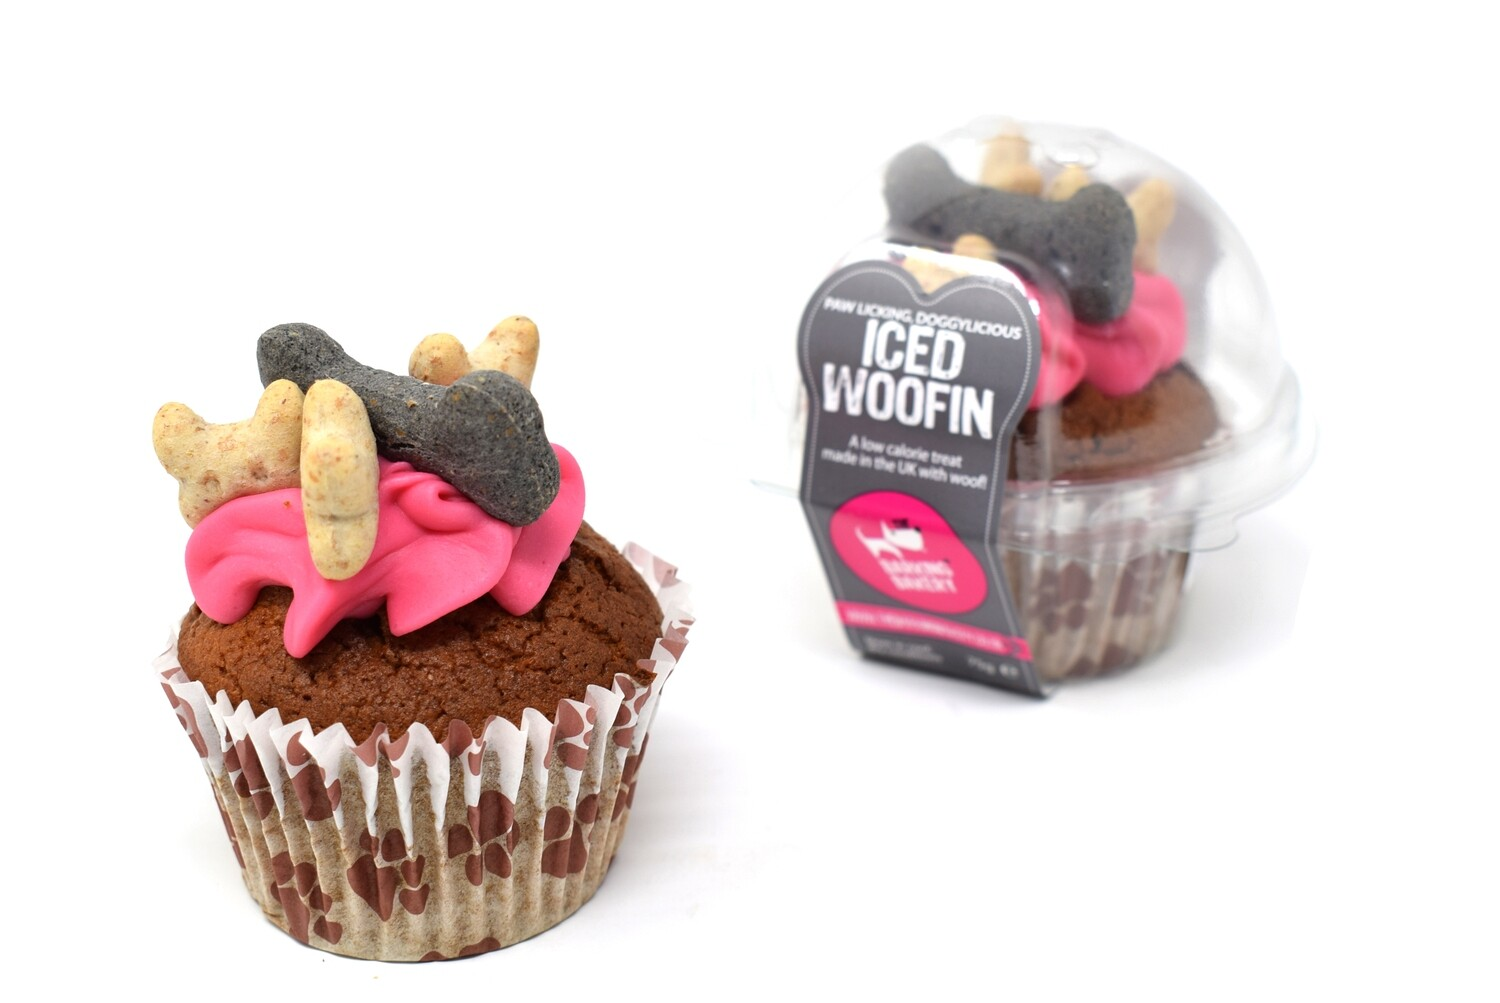 Cupcake Iced Woofin